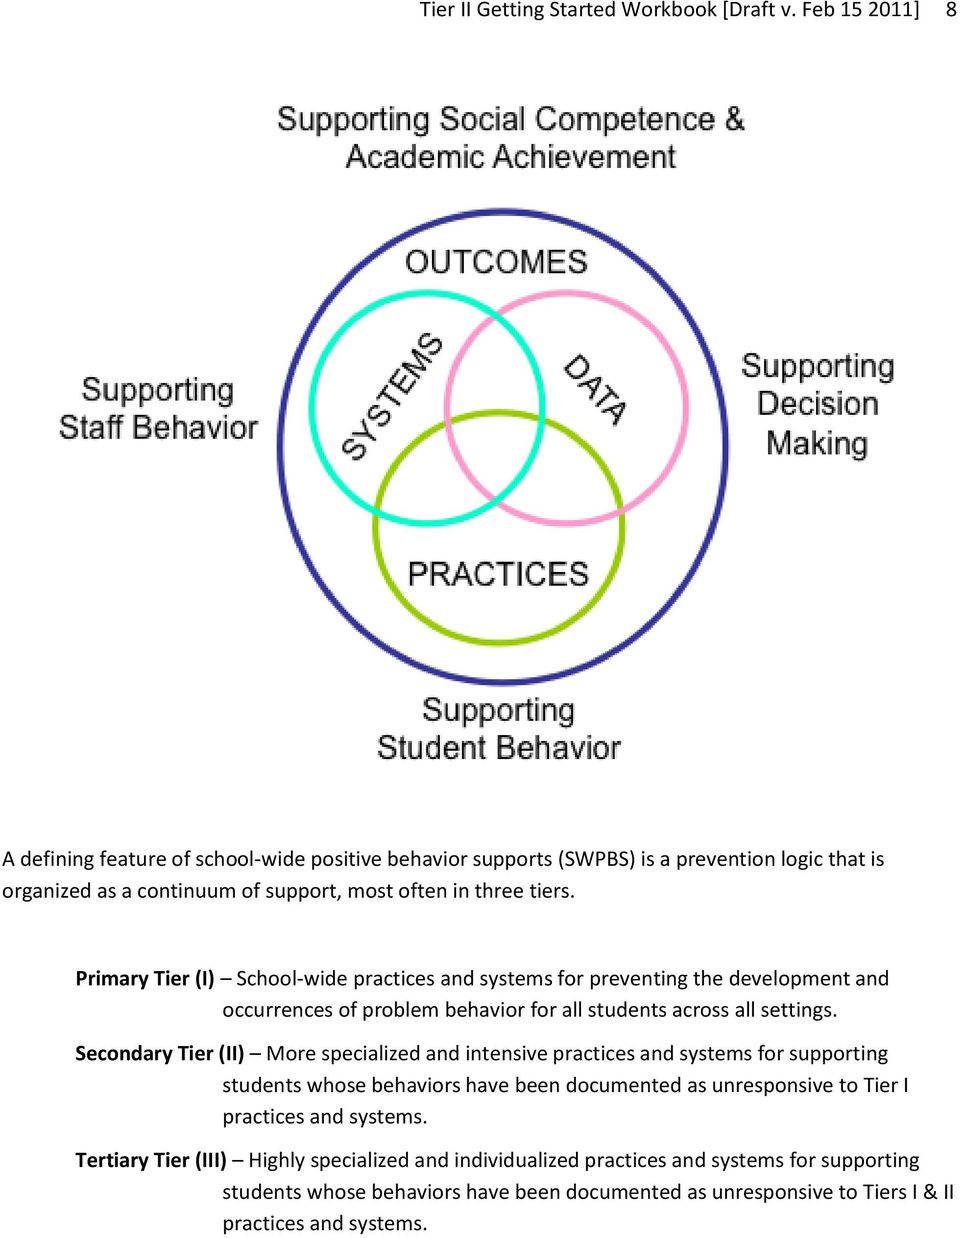 Primary Tier (I) School-wide practices and systems for preventing the development and occurrences of problem behavior for all students across all settings.